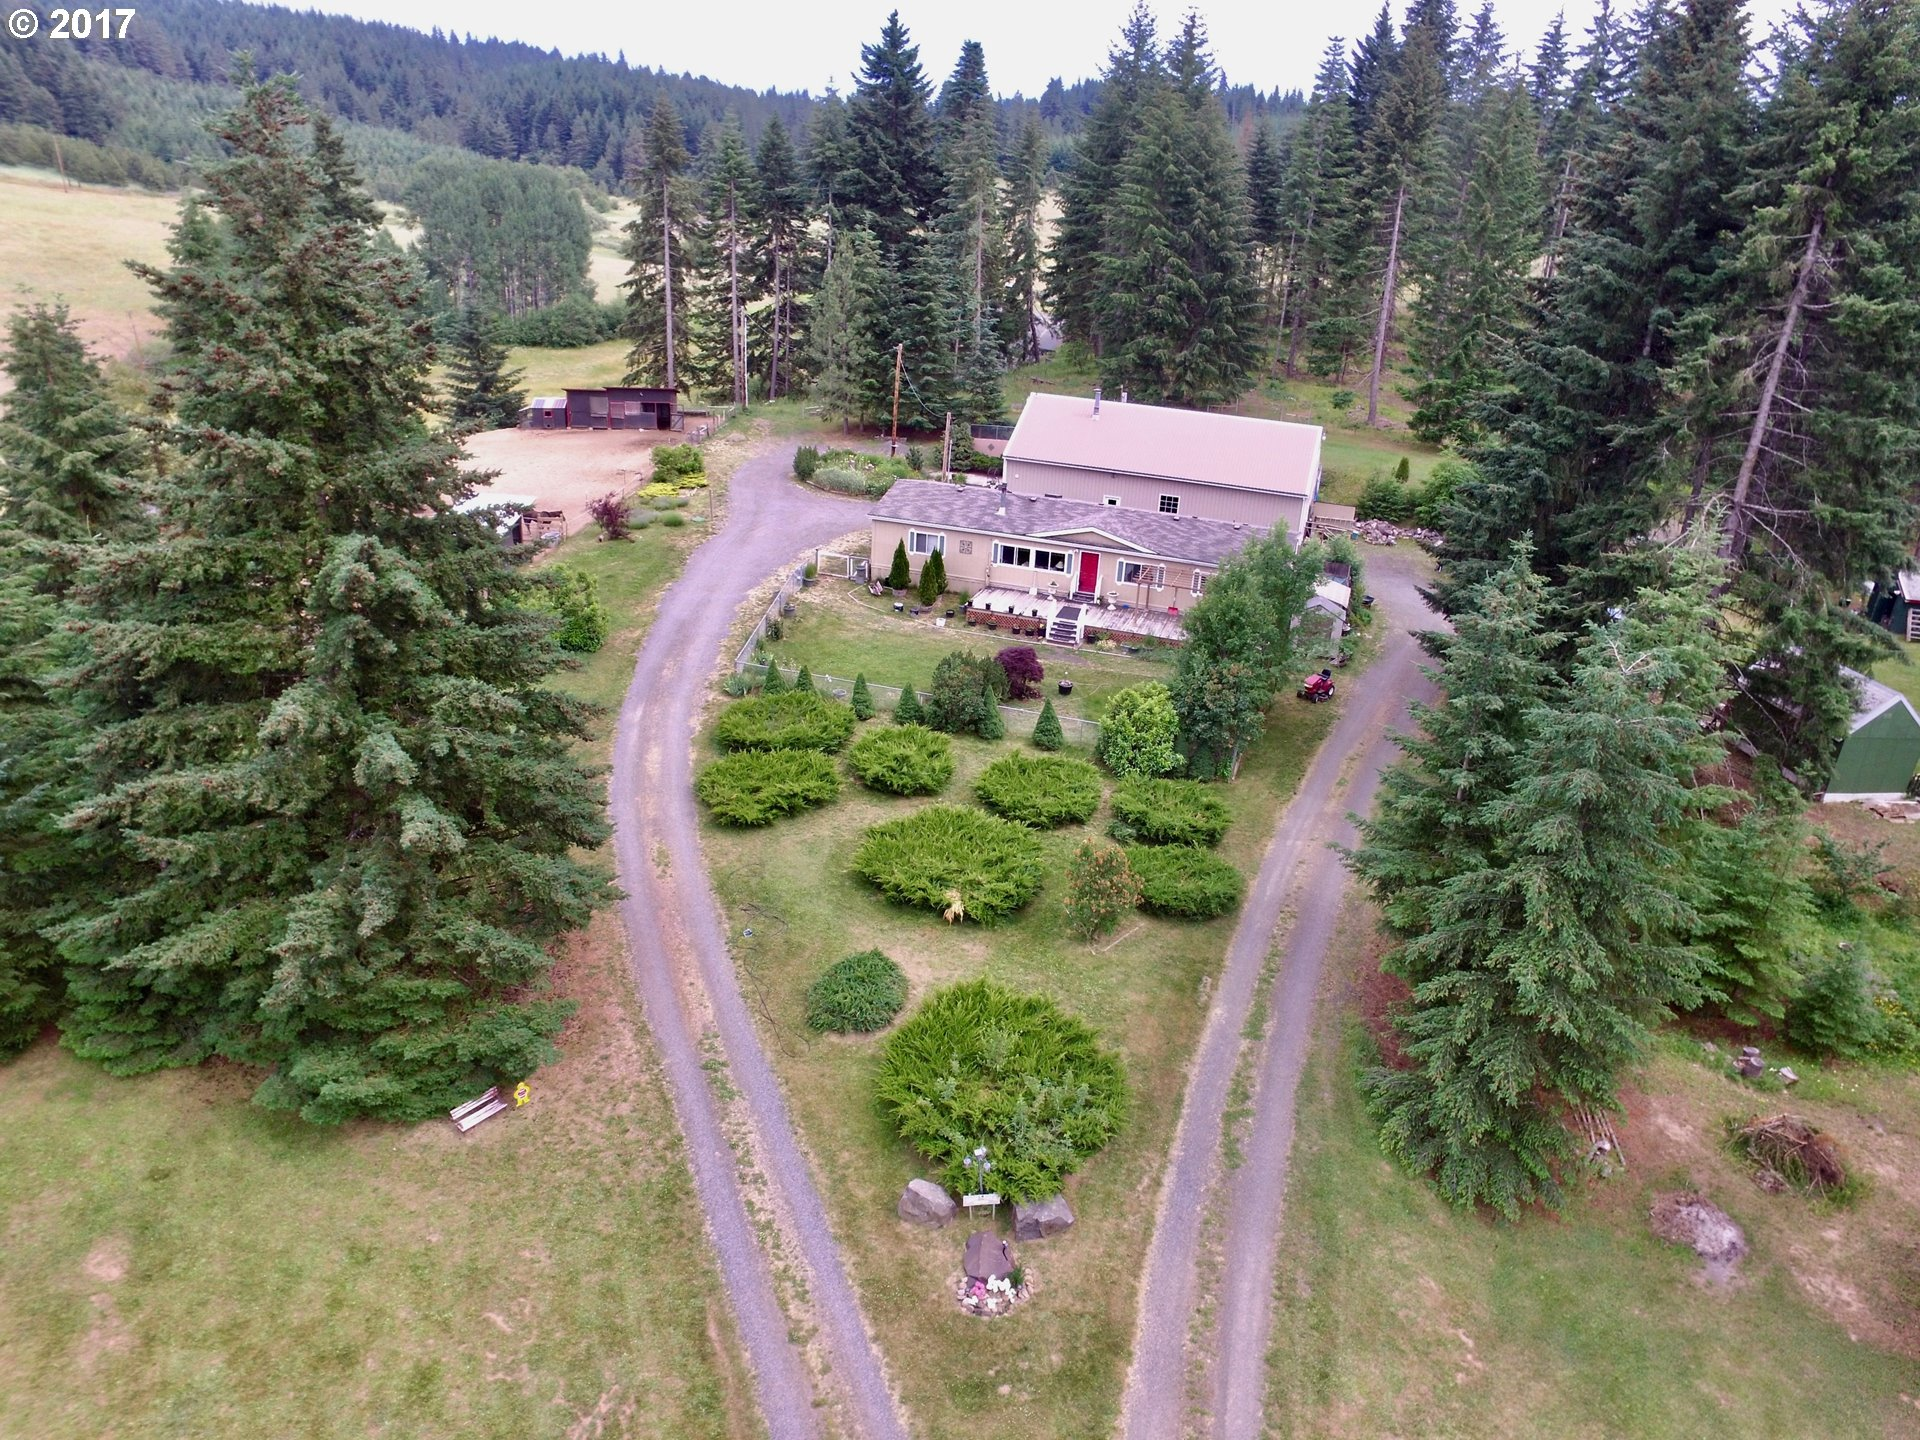 70 ACME RD, White Salmon, WA 98672